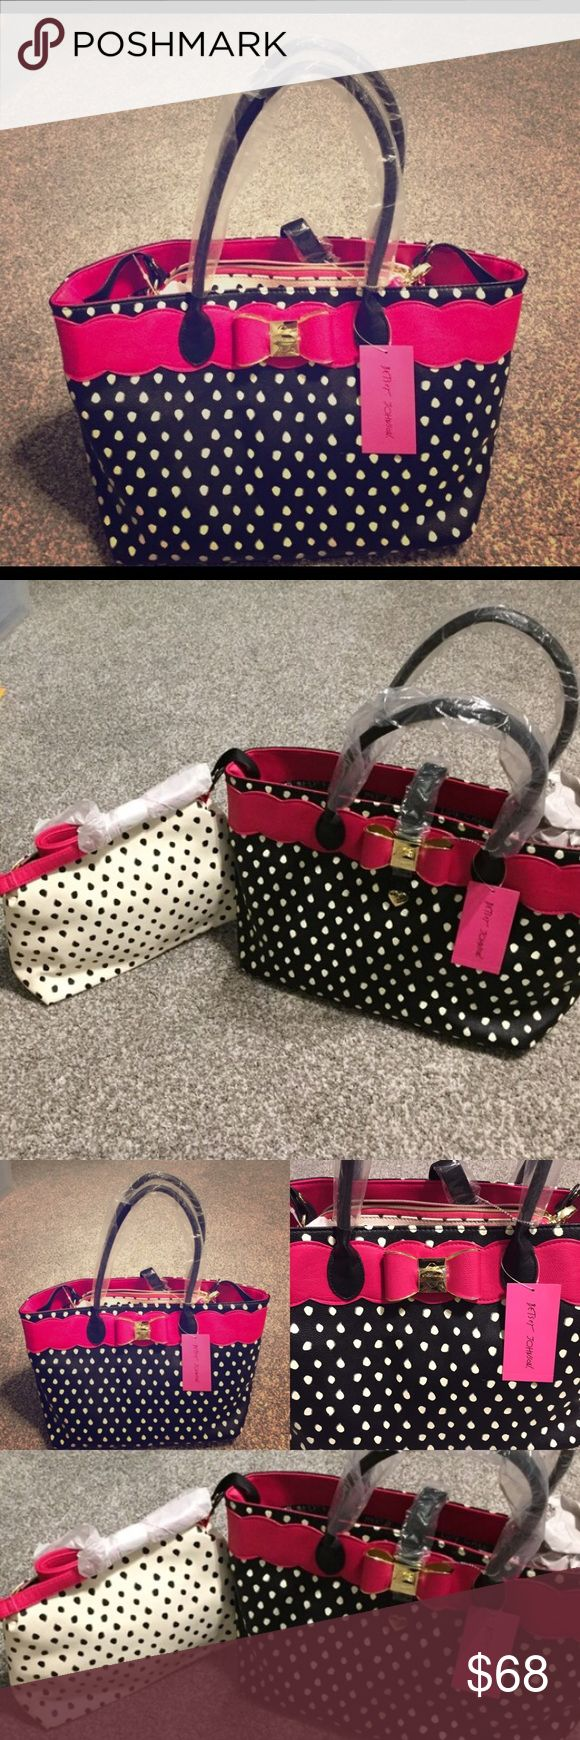 """NWT- Betsey Johnson Large Tote AND Cross Body bags Two bags in one!! Large tote and coordinating cross body/clutch bag.  Betsey Johnson's """"Bag in a Bag"""" features a polka dot pouch that becomes a stylish cross body or clutch bag when unsnapped from the interior.  NWT Betsey Johnson Bags"""